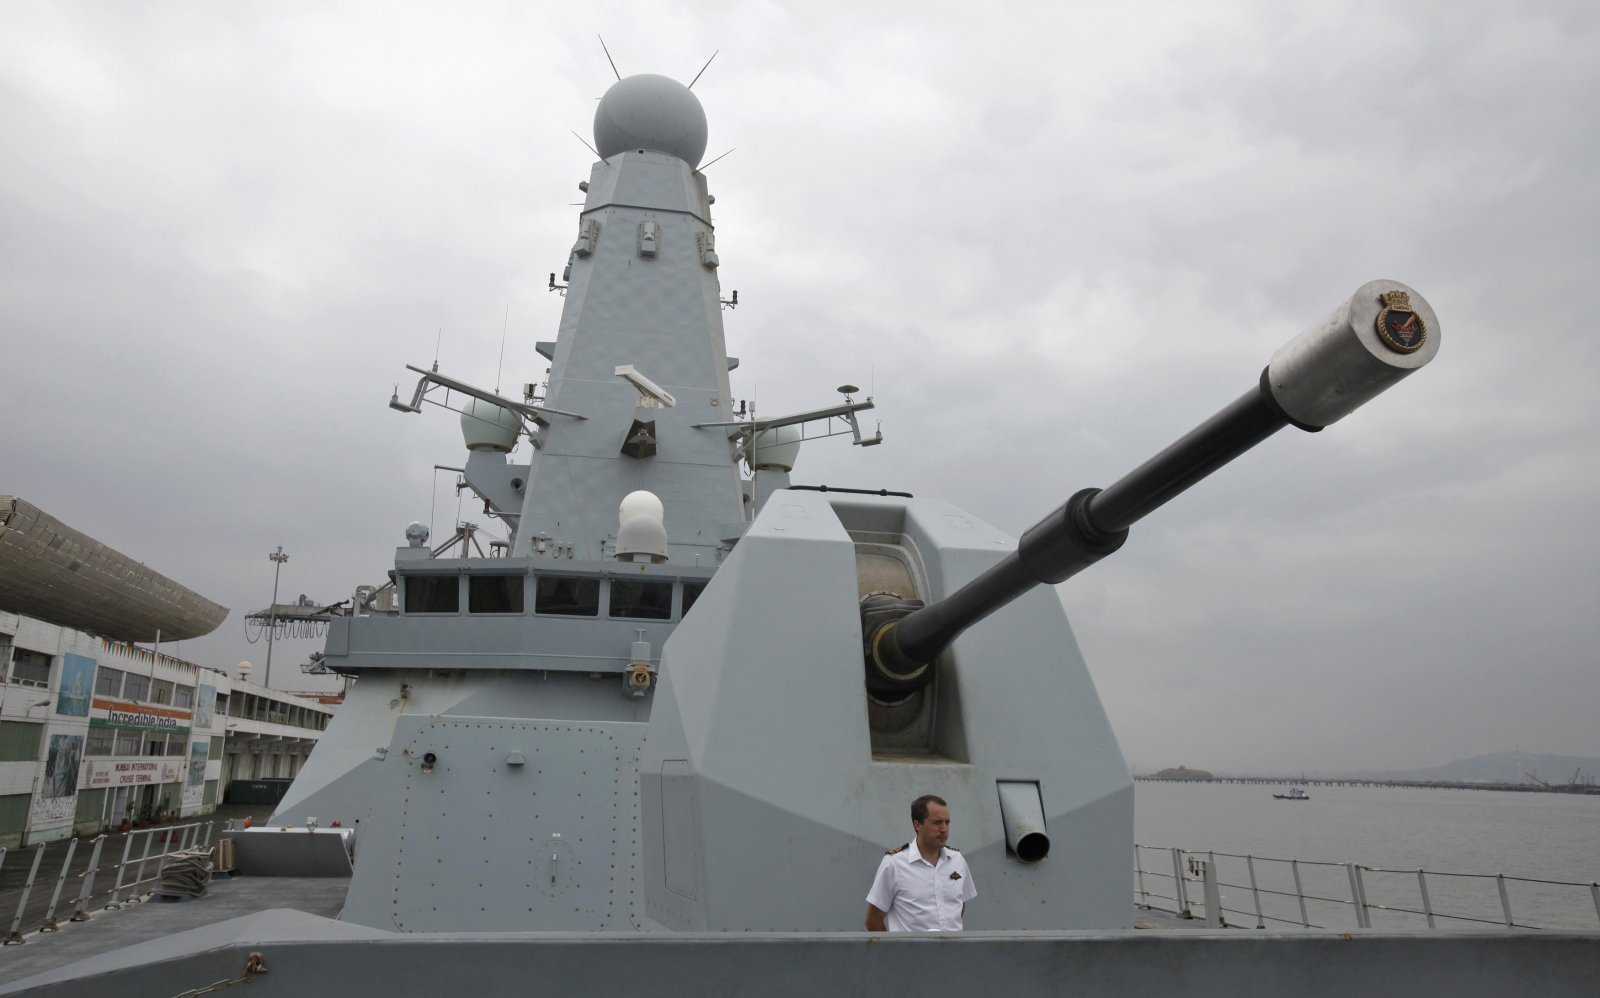 royal navy 39 s fleet 39 too small to deal with external